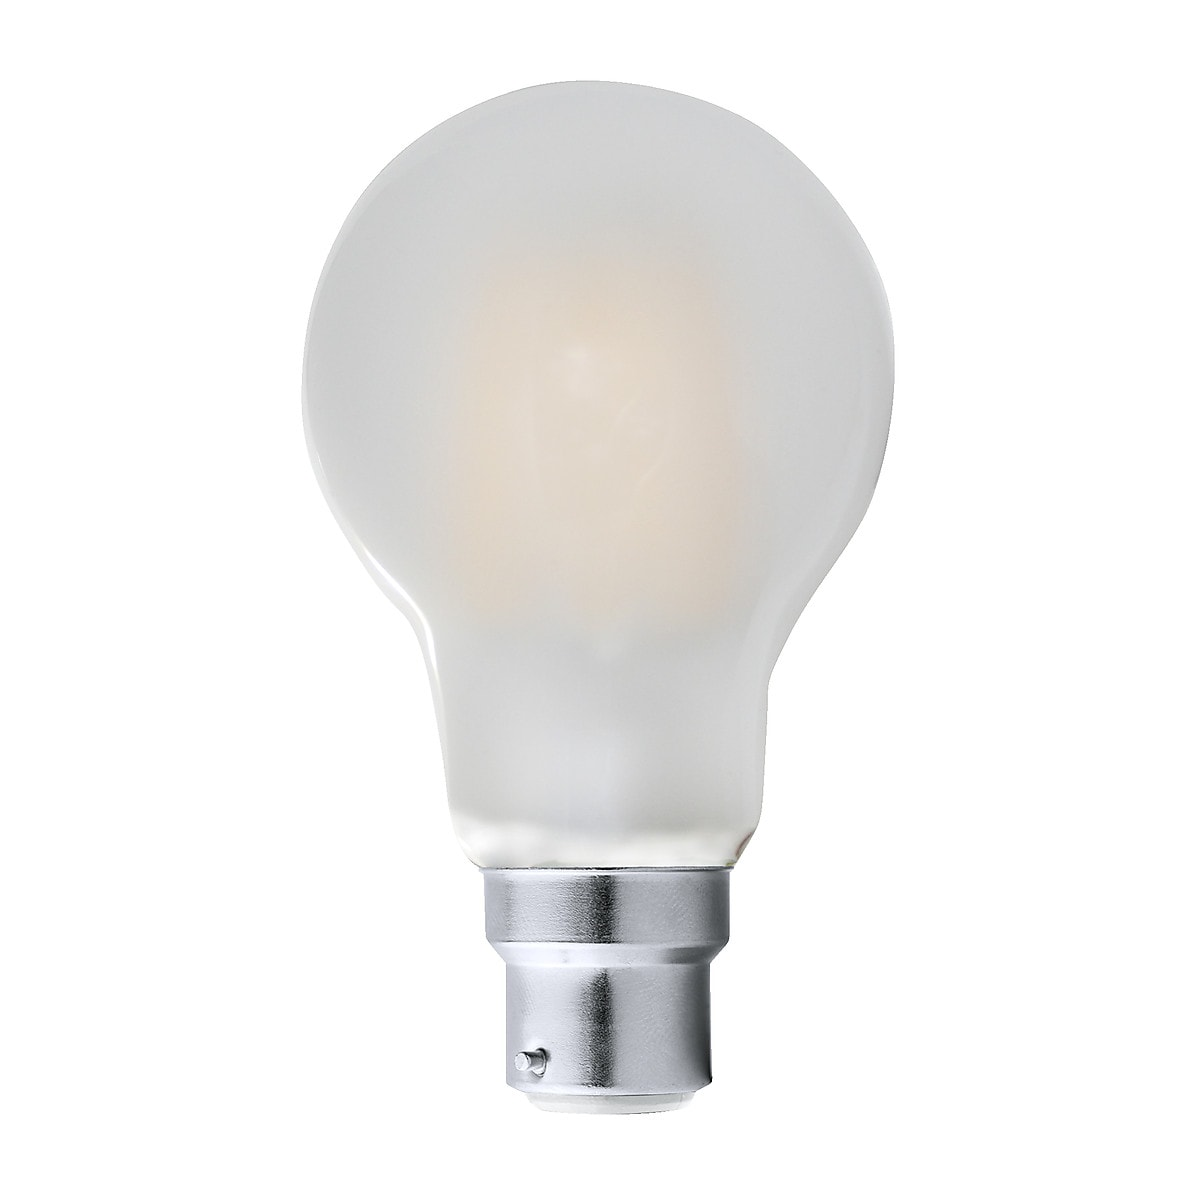 Clas Ohlson B22 Dimmable LED GLS Bulb